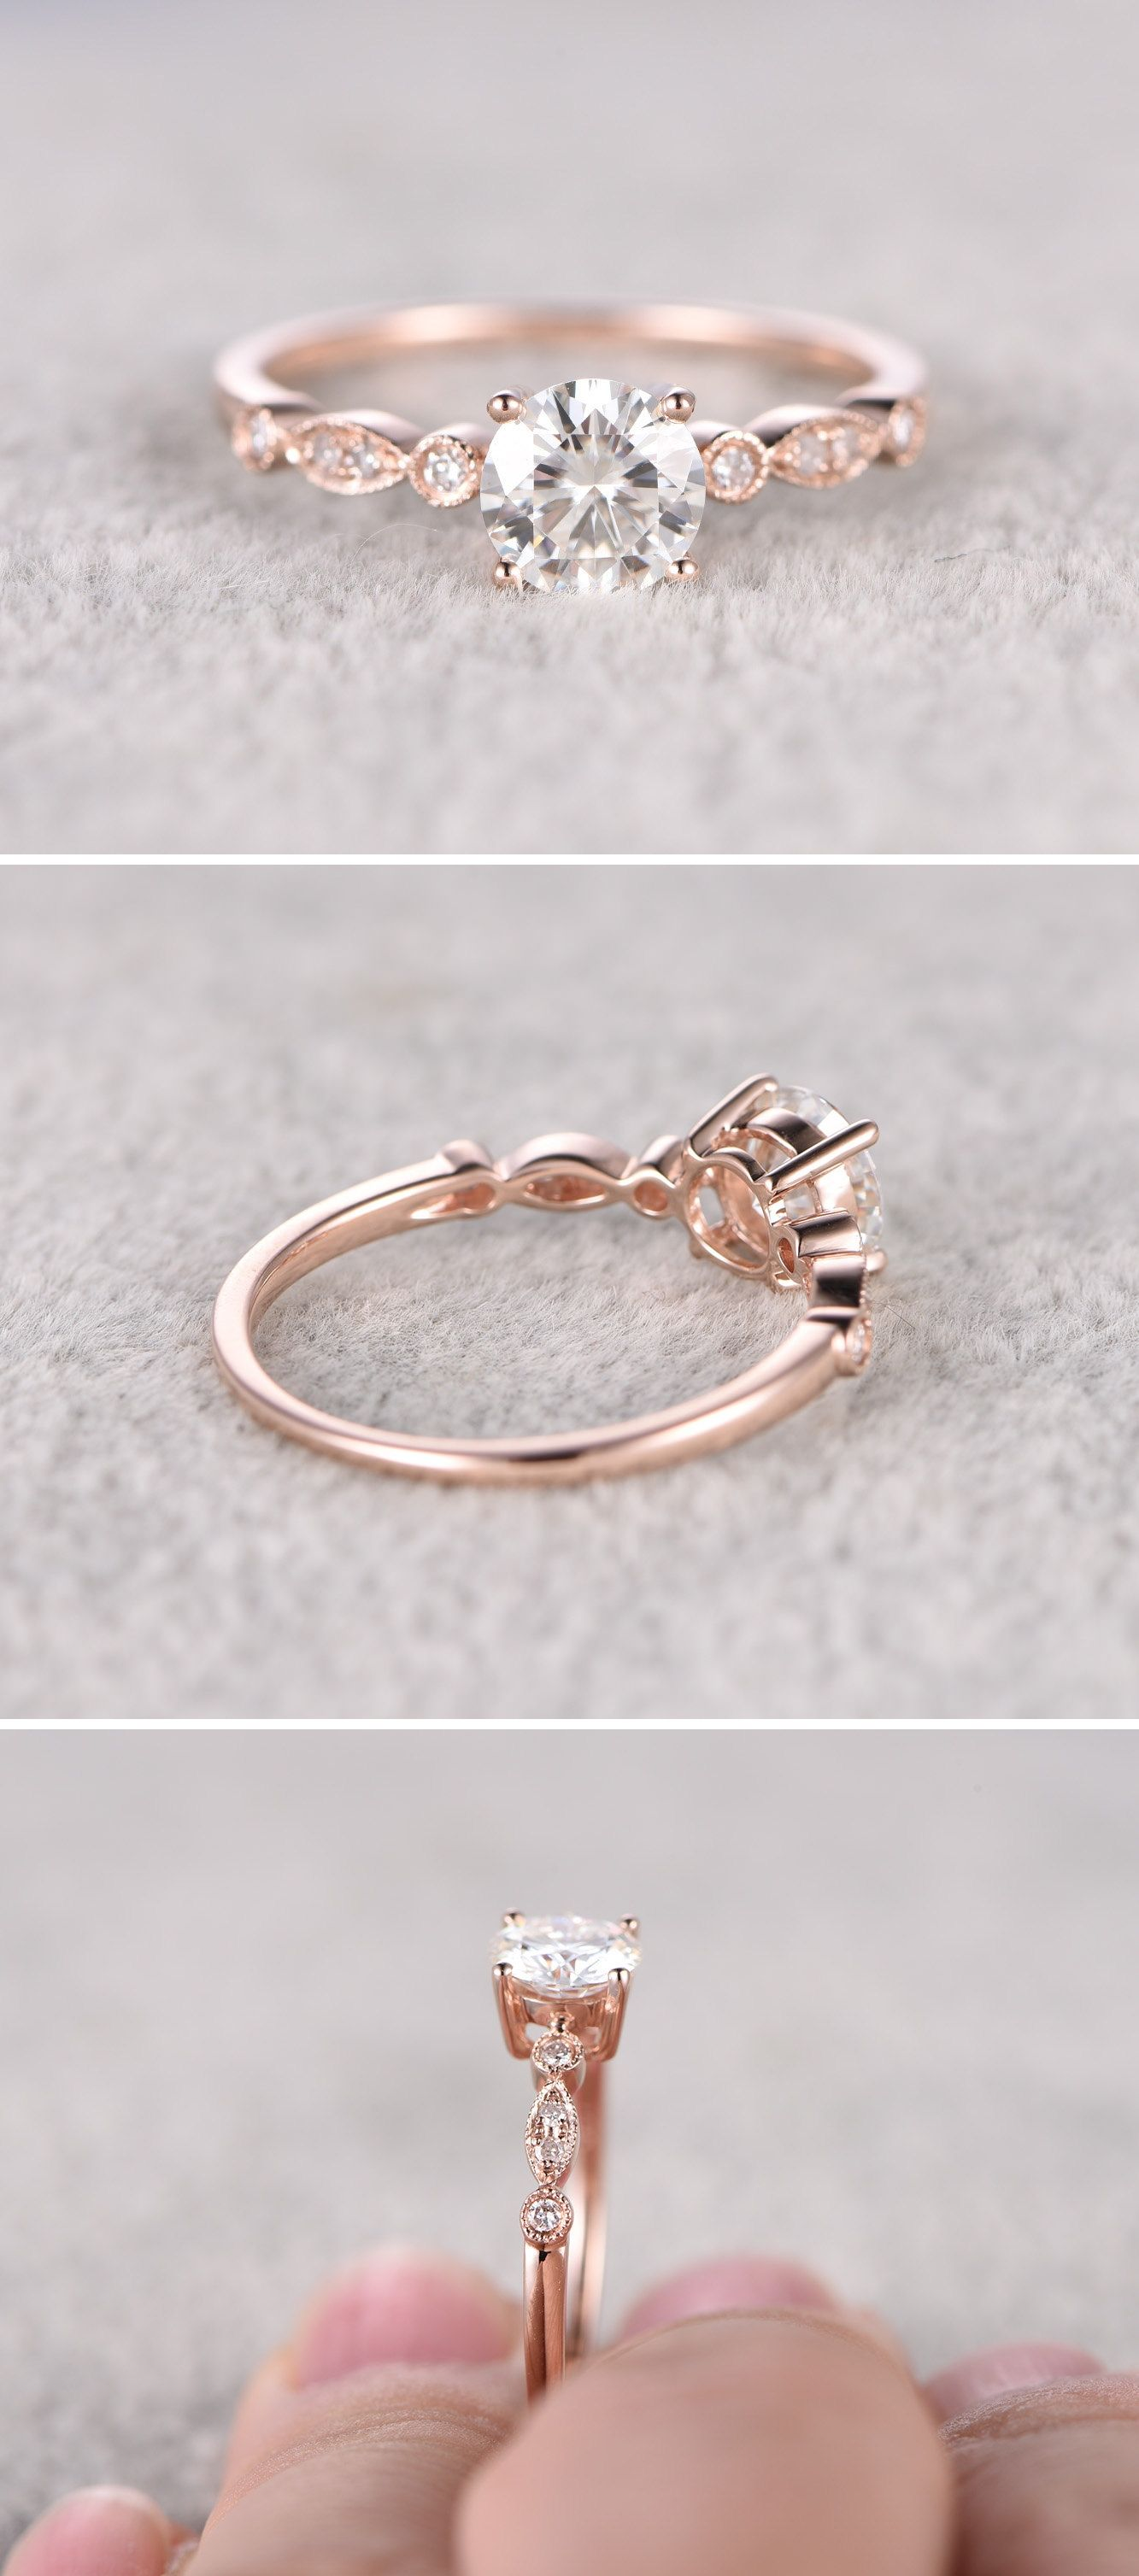 My Favorite Promise Ring Moissanite In Rose Gold Engagement